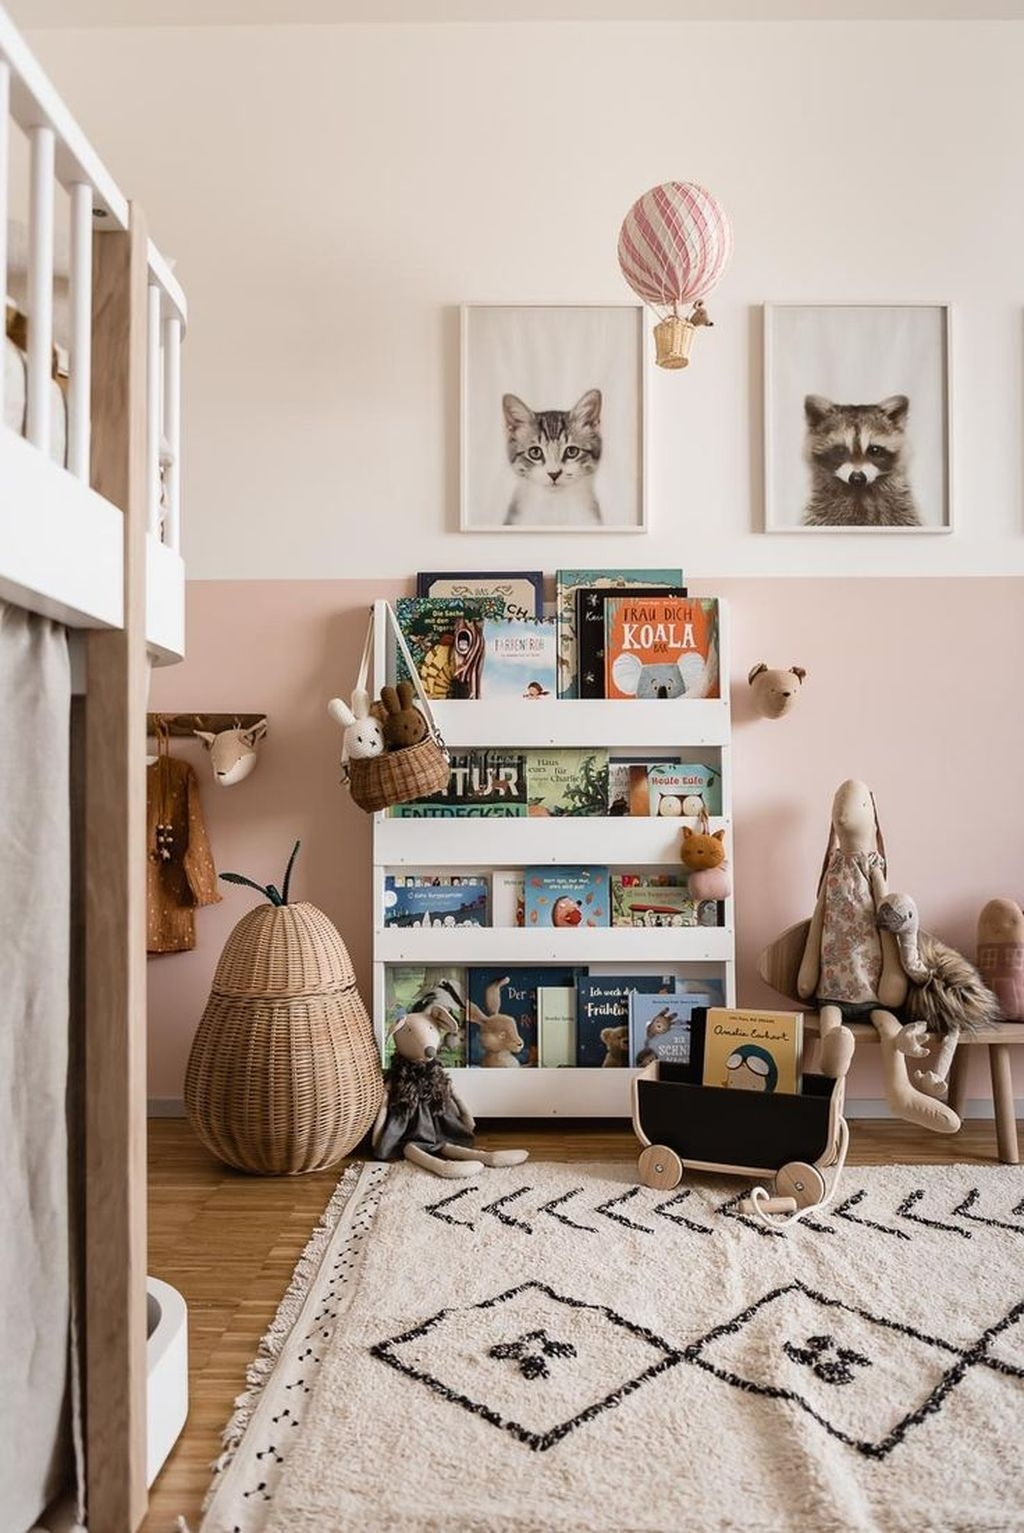 Inspiring Kids Room Design Ideas 37